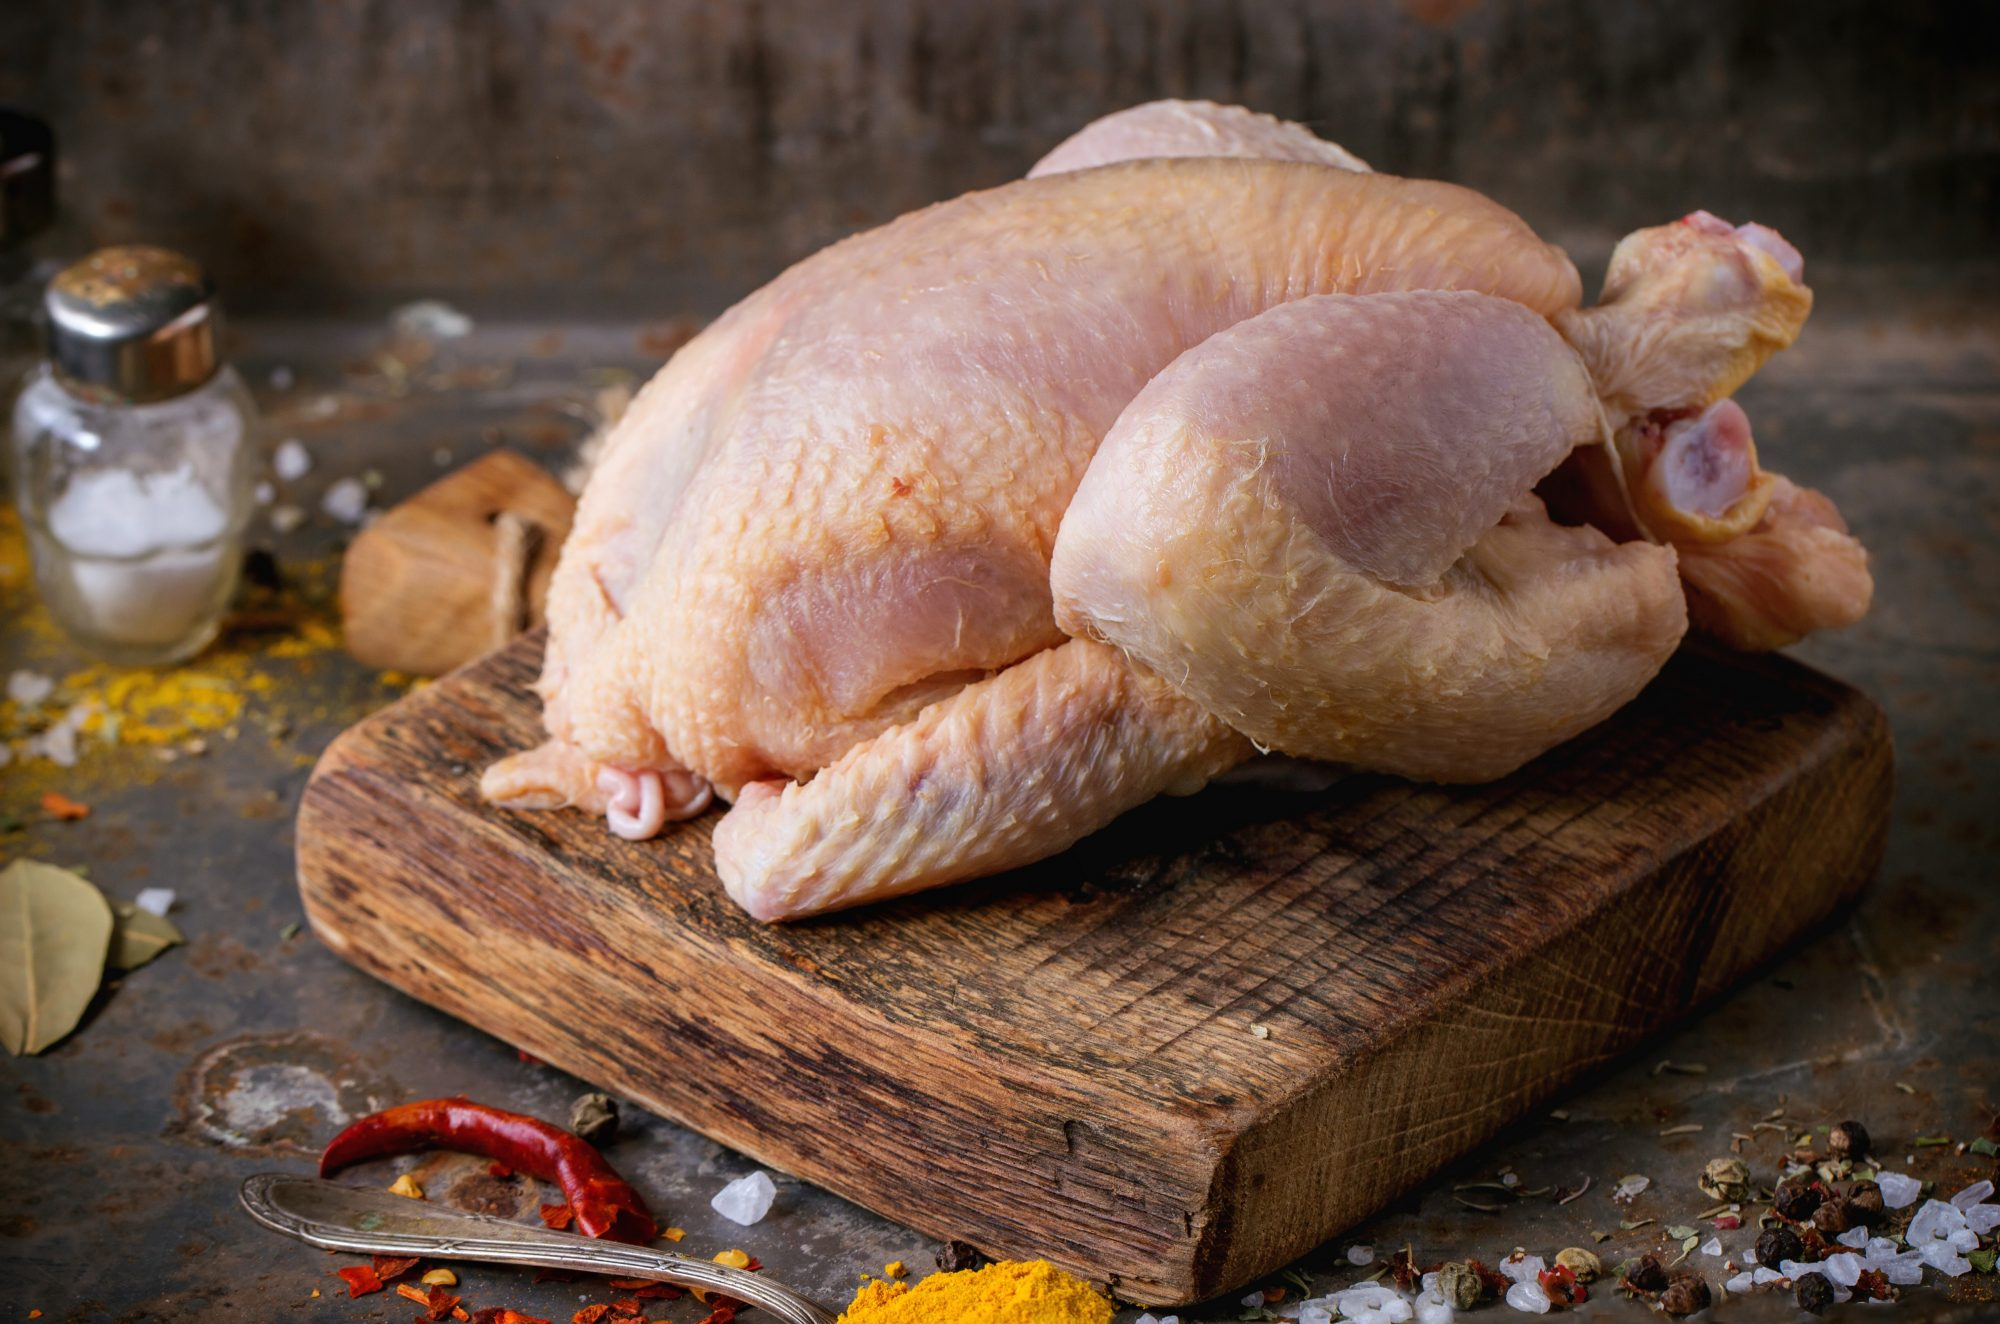 Perdue Wants to Lure Organic Shoppers With Cheaper Chicken